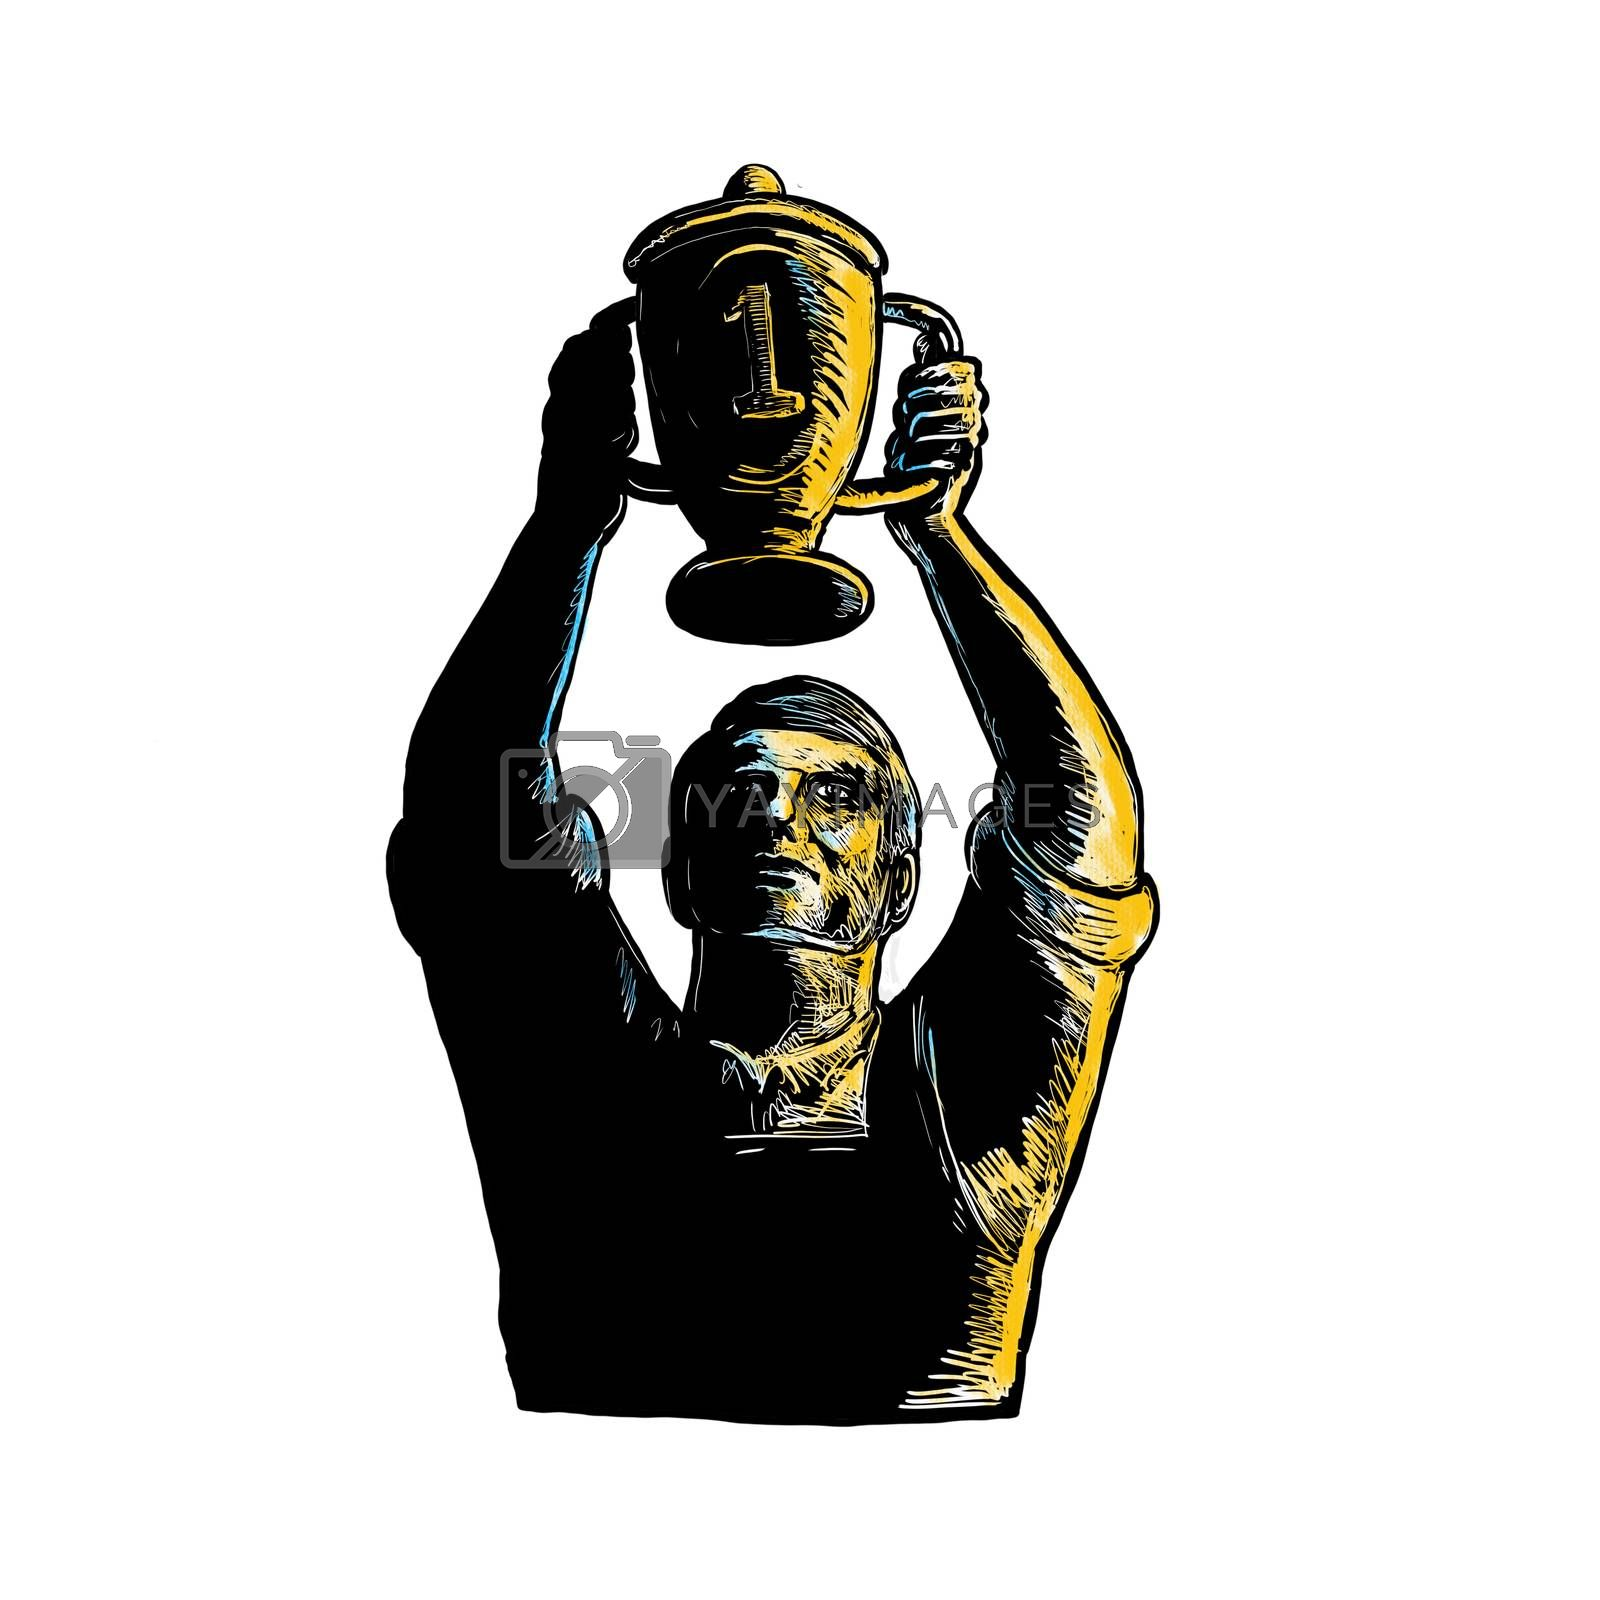 Woodcut style illustration of a worker winning and raising up championship trophy cup viewed from front on isolated background.